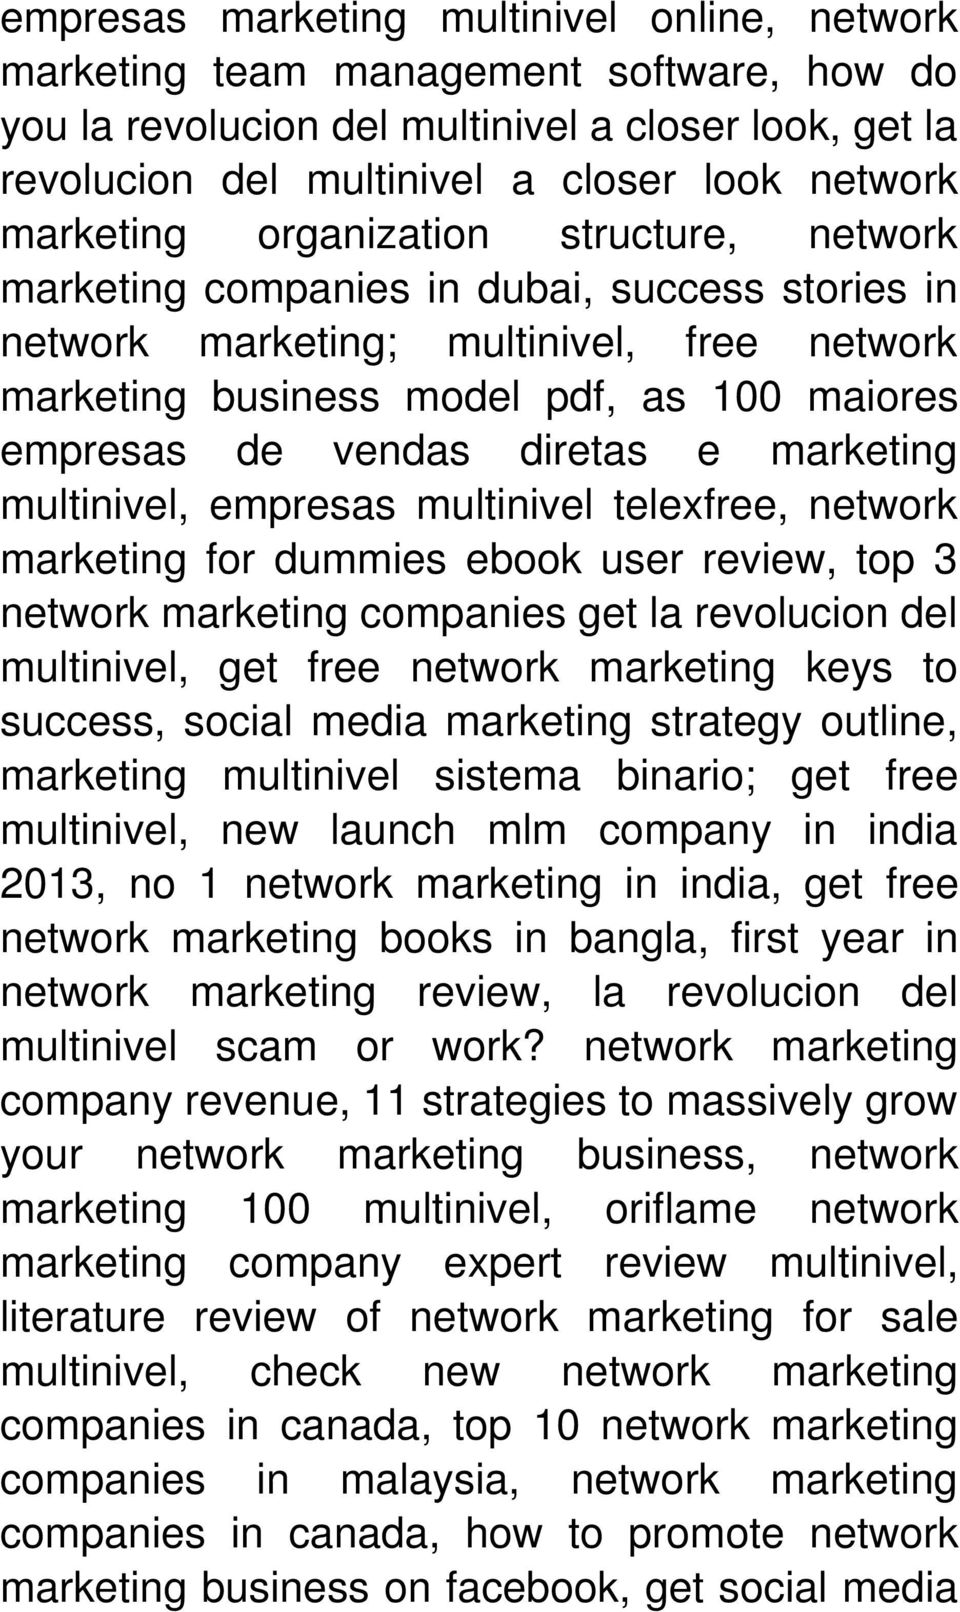 diretas e marketing multinivel, empresas multinivel telexfree, network marketing for dummies ebook user review, top 3 network marketing companies get la revolucion del multinivel, get free network